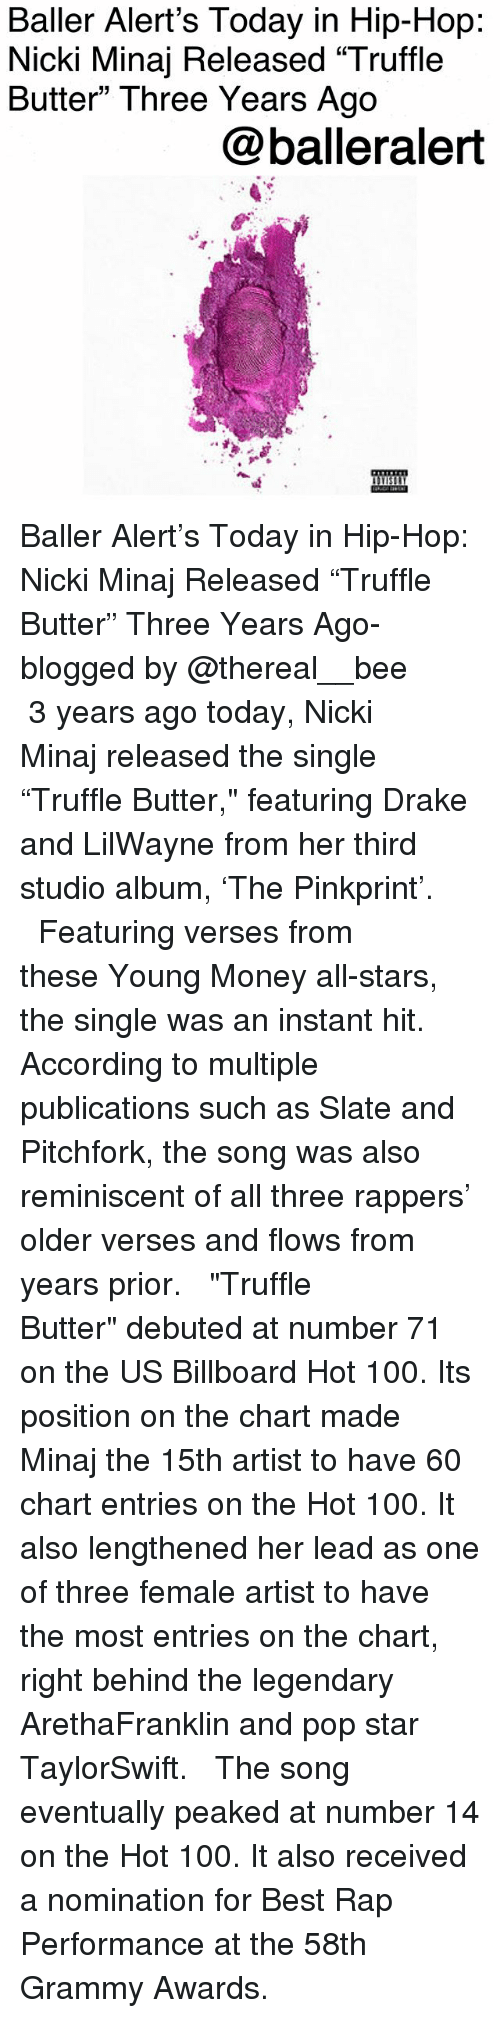 """Anaconda, Baller Alert, and Billboard: Baller Alert's Today in Hip-Hop  Nicki Minaj Released """"Truffle  Butter"""" Three Years Ago  @balleralert Baller Alert's Today in Hip-Hop: Nicki Minaj Released """"Truffle Butter"""" Three Years Ago-blogged by @thereal__bee ⠀⠀⠀⠀⠀⠀⠀ ⠀⠀⠀⠀ 3 years ago today, Nicki Minaj released the single """"Truffle Butter,"""" featuring Drake and LilWayne from her third studio album, 'The Pinkprint'. ⠀⠀⠀⠀⠀⠀⠀ ⠀⠀⠀⠀ Featuring verses from these Young Money all-stars, the single was an instant hit. According to multiple publications such as Slate and Pitchfork, the song was also reminiscent of all three rappers' older verses and flows from years prior. ⠀⠀⠀⠀⠀⠀⠀ ⠀⠀⠀⠀ """"Truffle Butter"""" debuted at number 71 on the US Billboard Hot 100. Its position on the chart made Minaj the 15th artist to have 60 chart entries on the Hot 100. It also lengthened her lead as one of three female artist to have the most entries on the chart, right behind the legendary ArethaFranklin and pop star TaylorSwift. ⠀⠀⠀⠀⠀⠀⠀ ⠀⠀⠀⠀ The song eventually peaked at number 14 on the Hot 100. It also received a nomination for Best Rap Performance at the 58th Grammy Awards."""